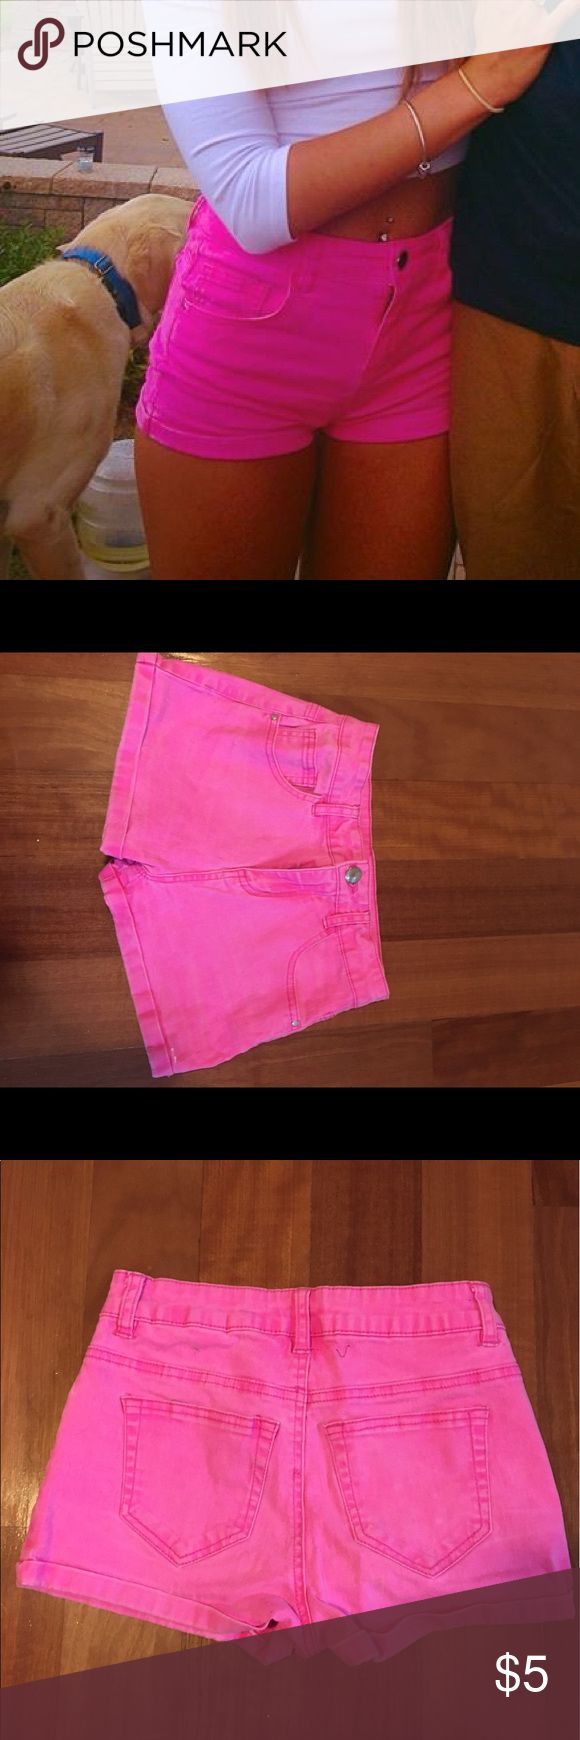 REFUGE High Rise Shorts purchased from Charlotte Russe. Good condition. Shorts feel comfy as spandex. Hot pink. Charlotte Russe Shorts